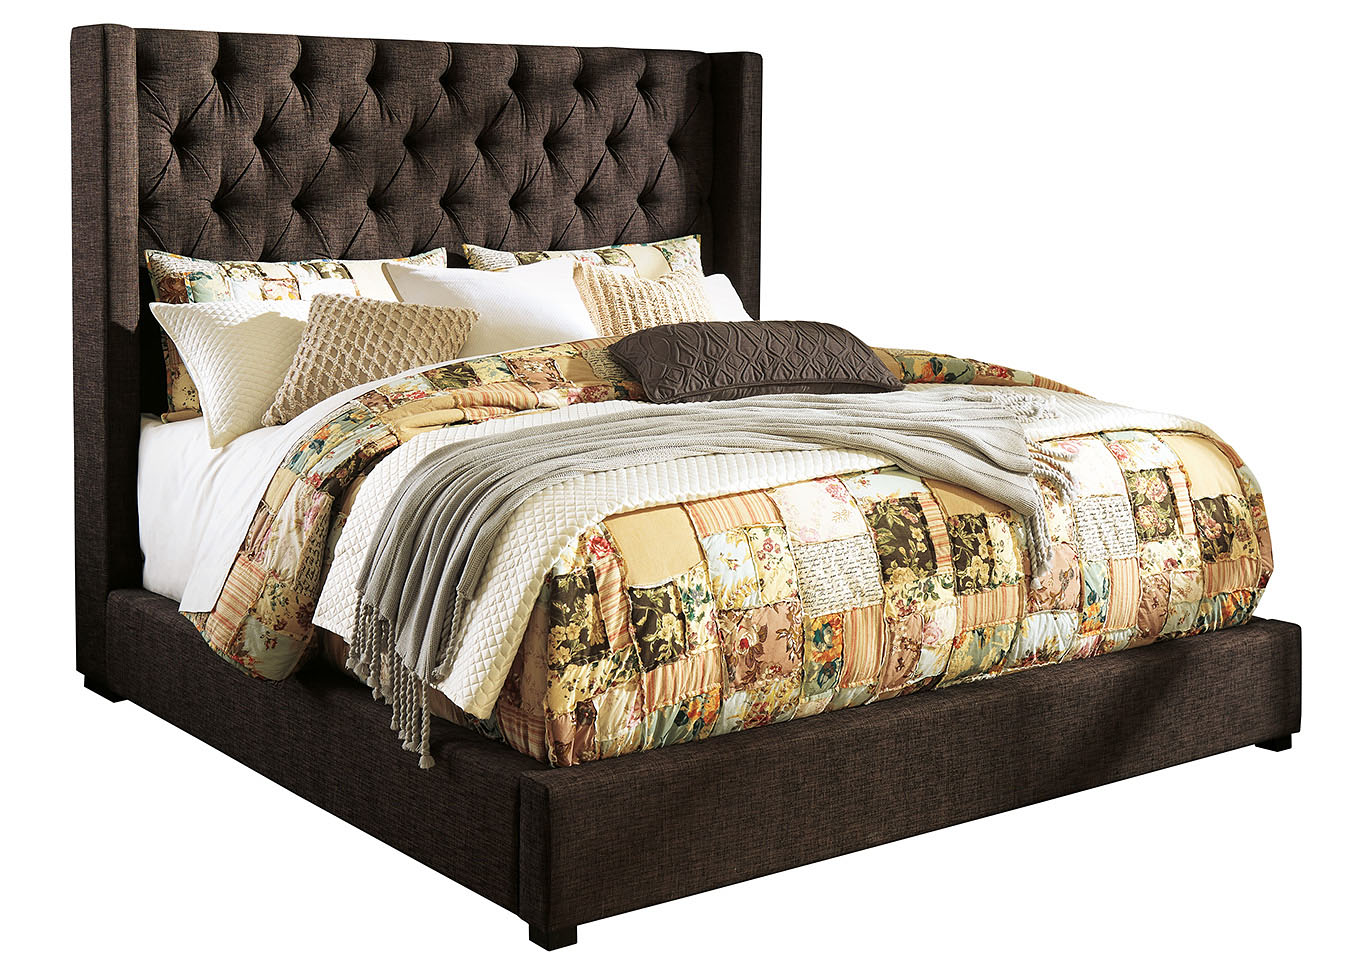 Norrister Brown King Upholstered Platform Bed,Signature Design By Ashley